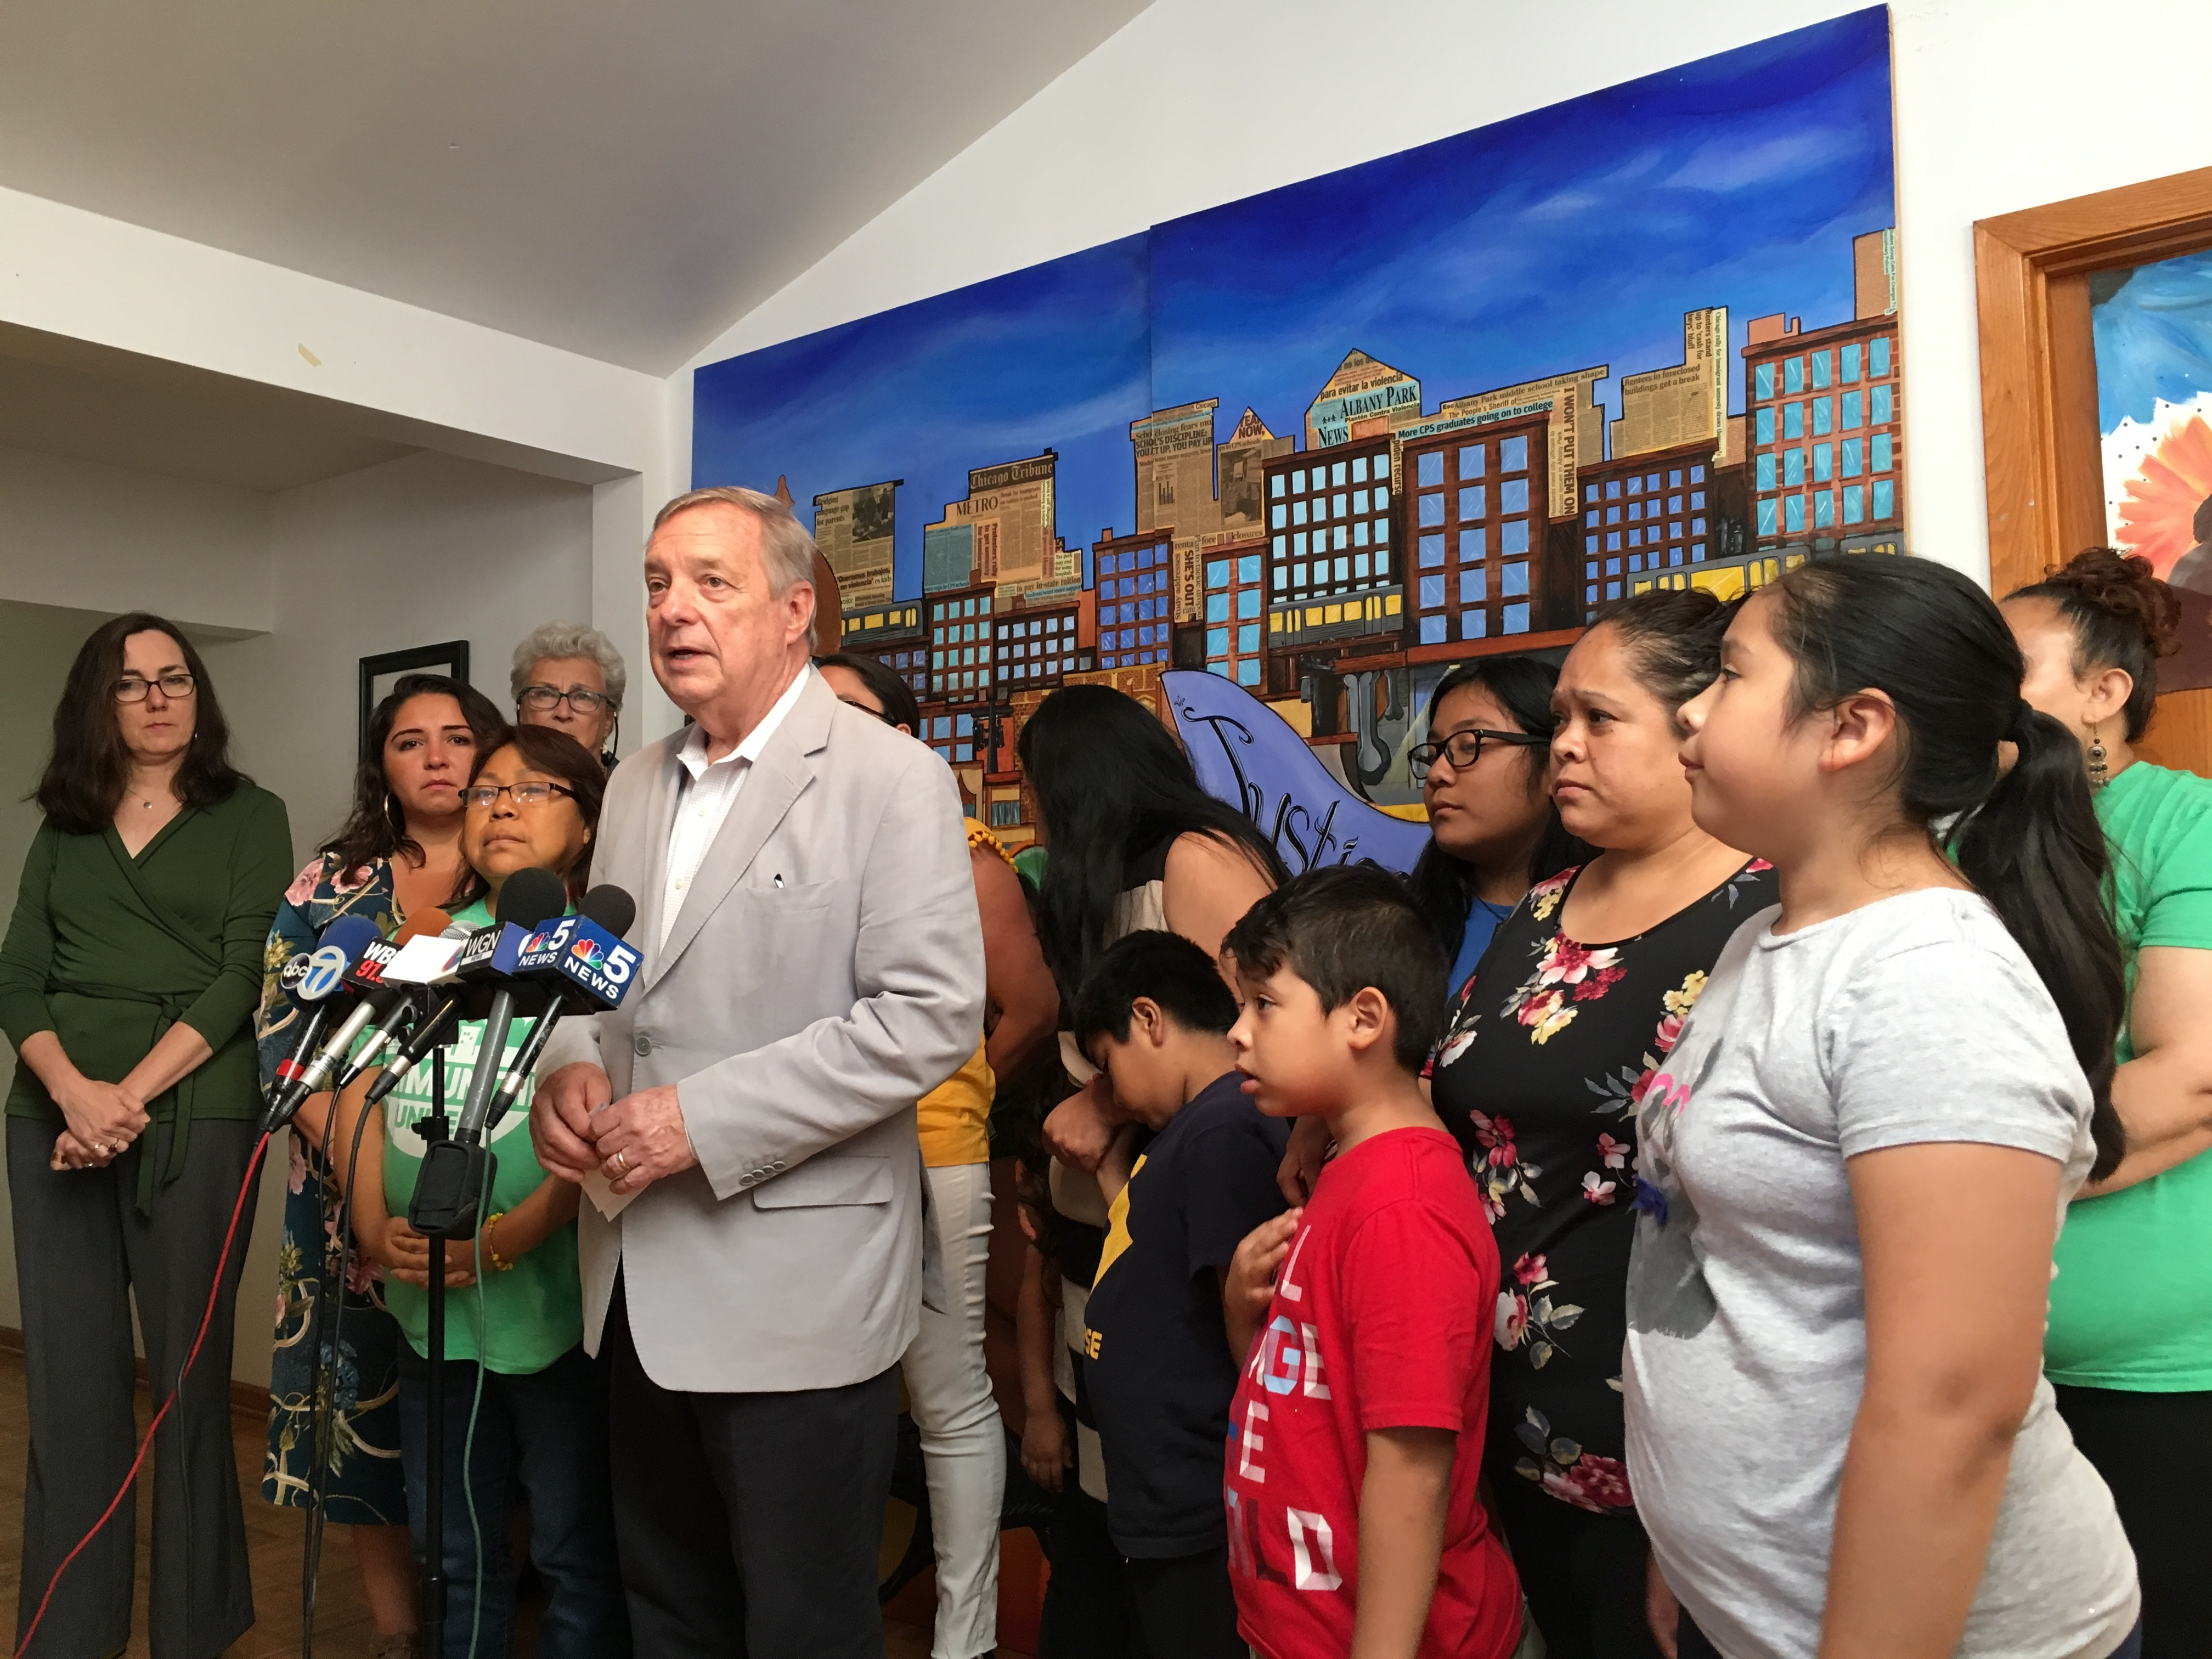 Sen. Dick Durbin (center) flanked by members of Communities United at their offices in Albany Park, July 12, 2019.